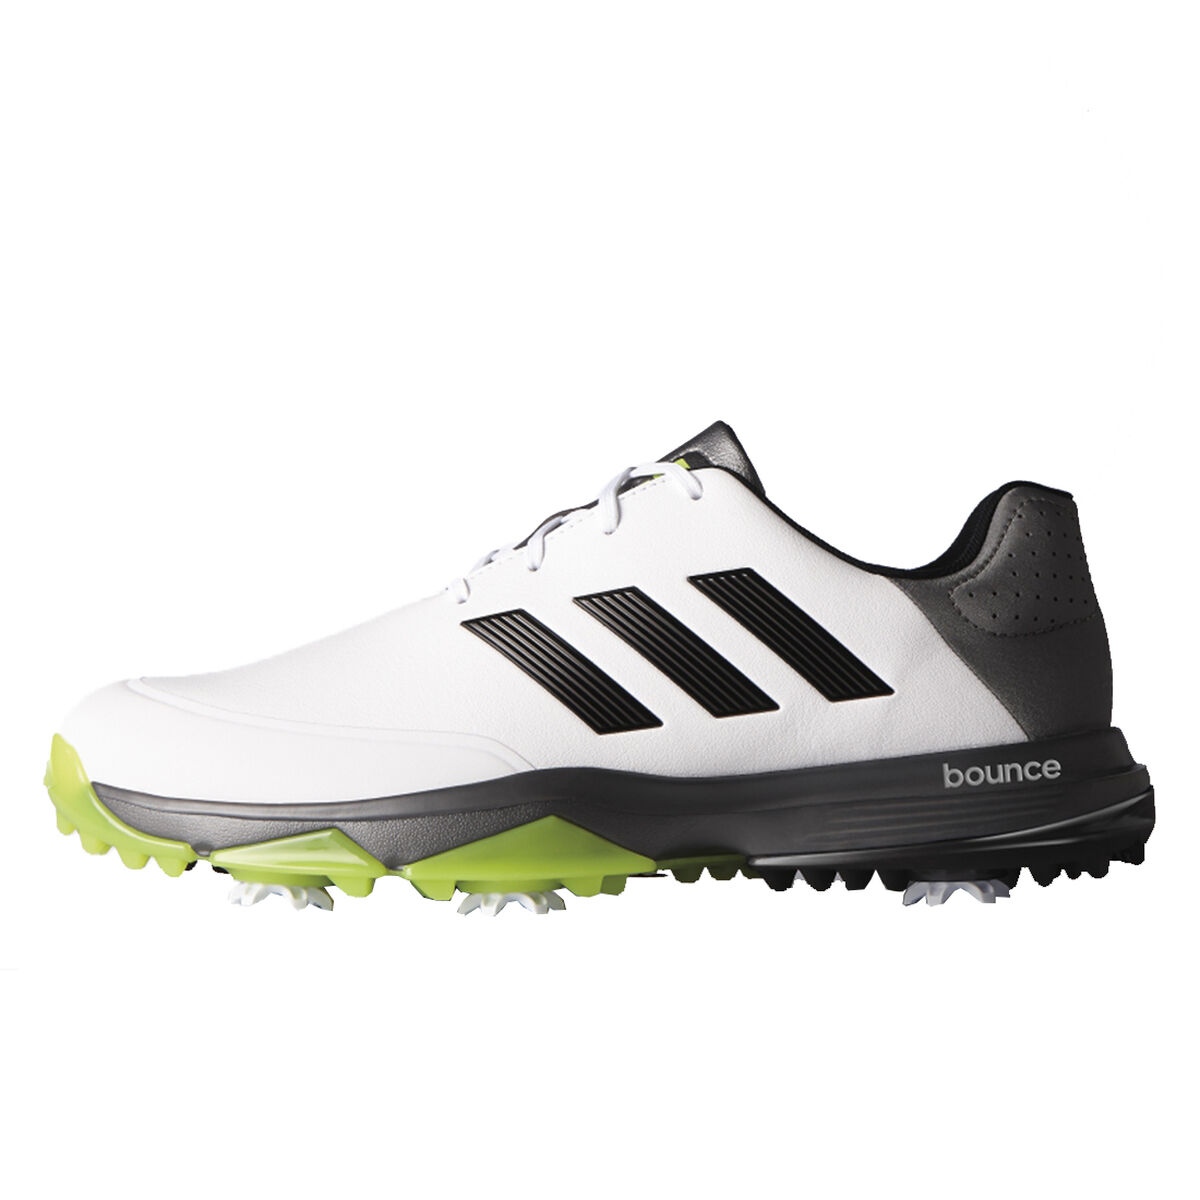 new styles 23849 b6bf2 Images. Adipower Bounce ...